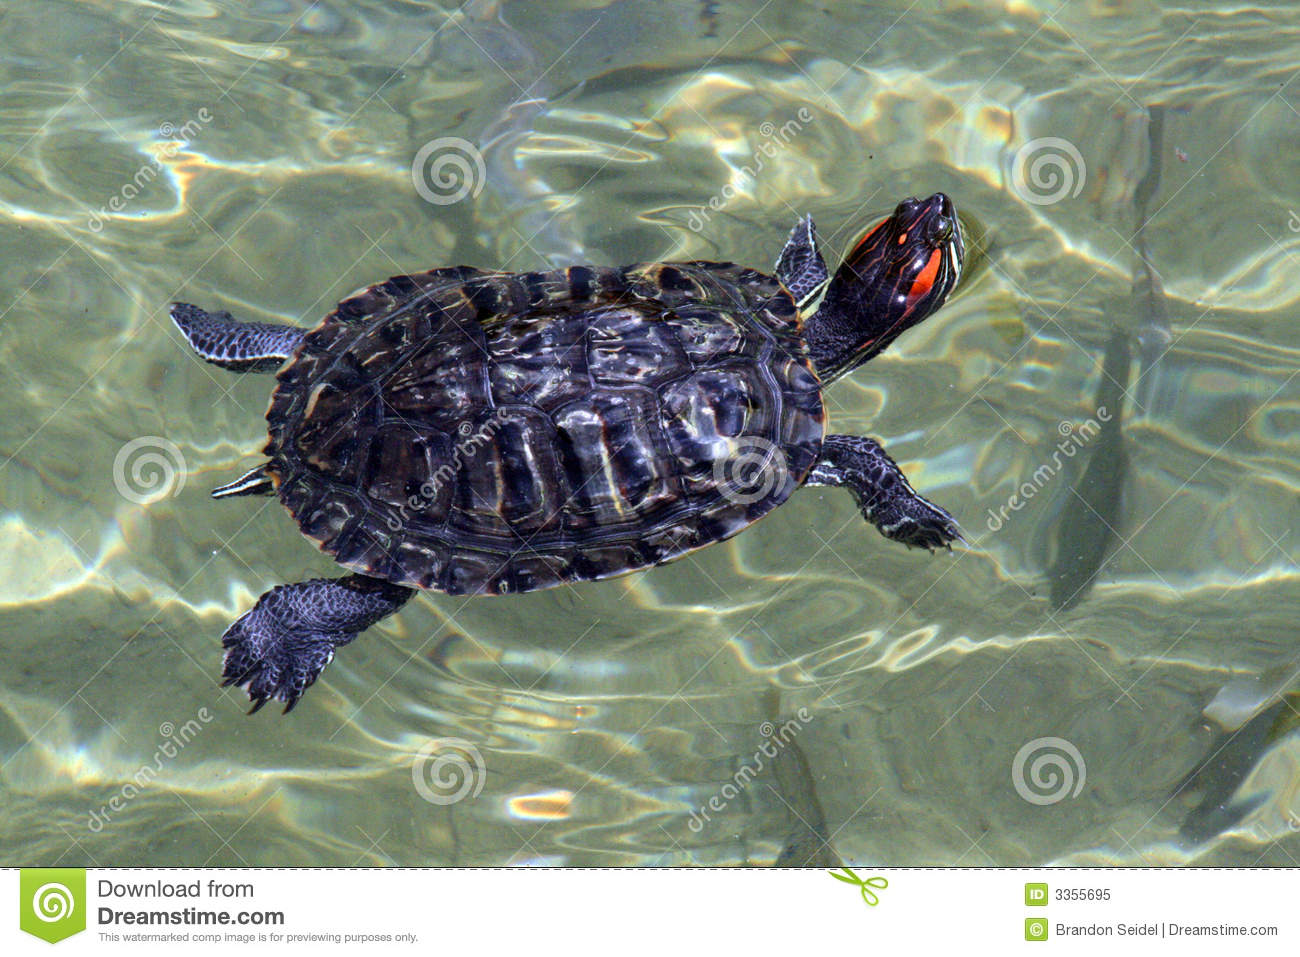 turtle swimming in a clear pond.